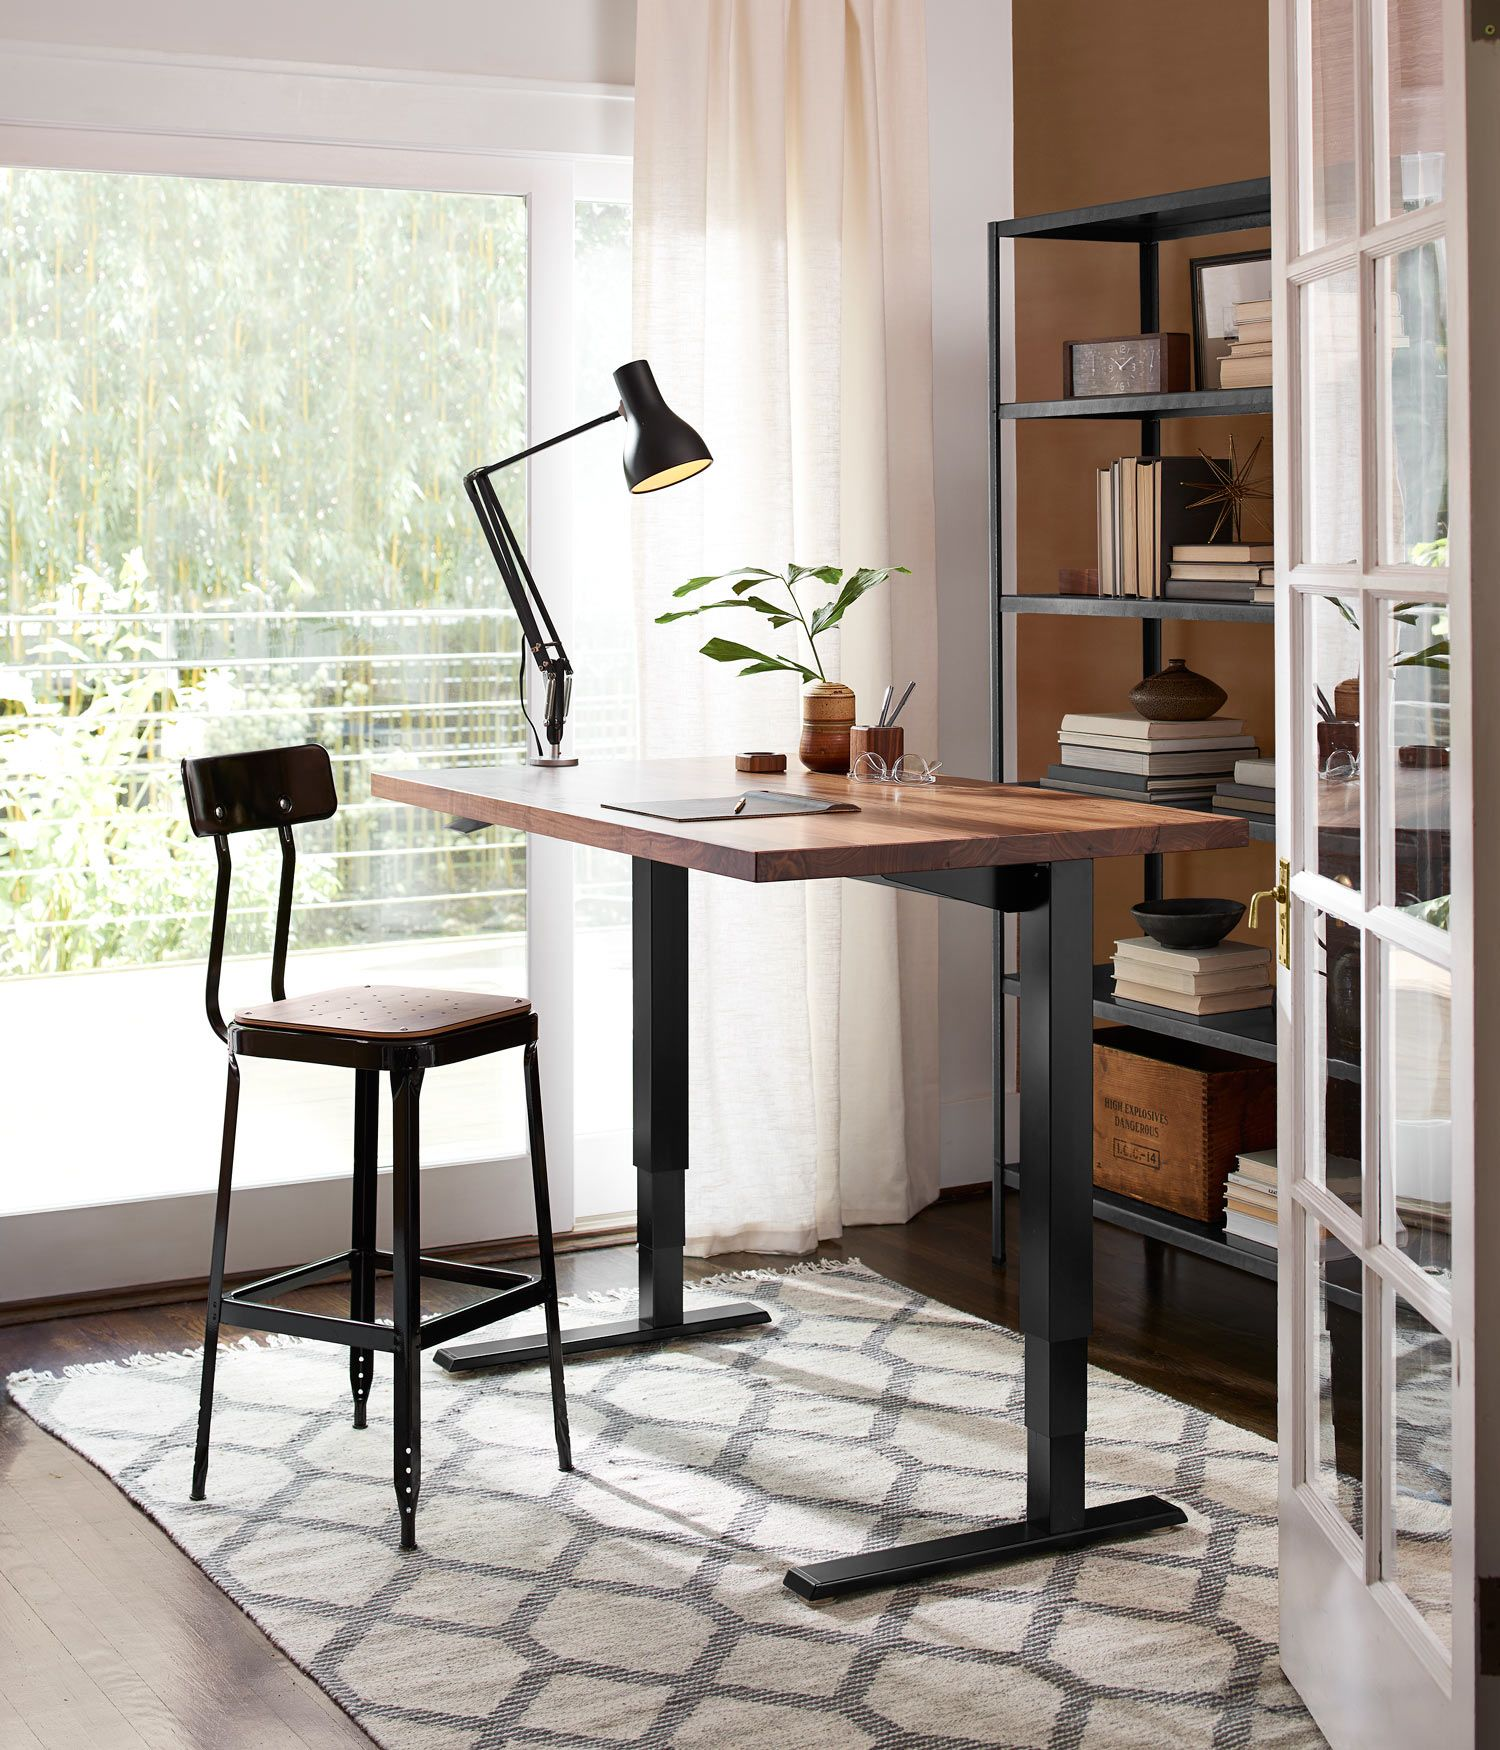 Humanscale® Sit + Stand Desk - Black with Walnut  Office desk